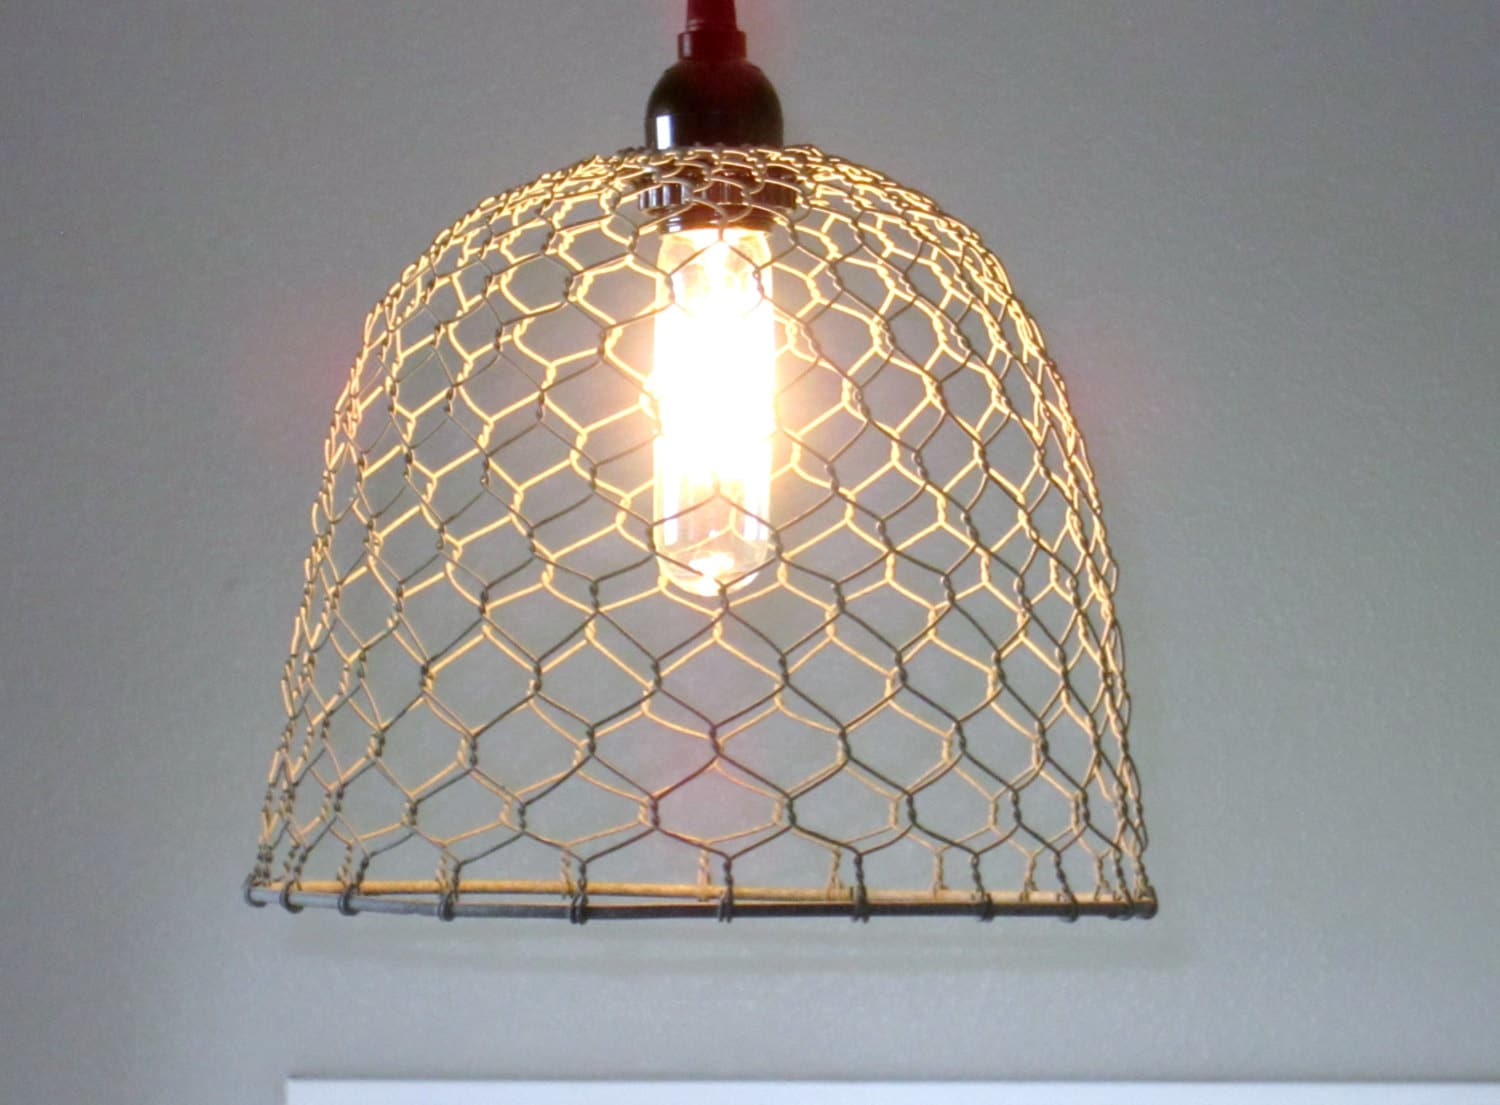 Rustic pendant lighting chicken wire farmhouse pendant zoom mozeypictures Image collections